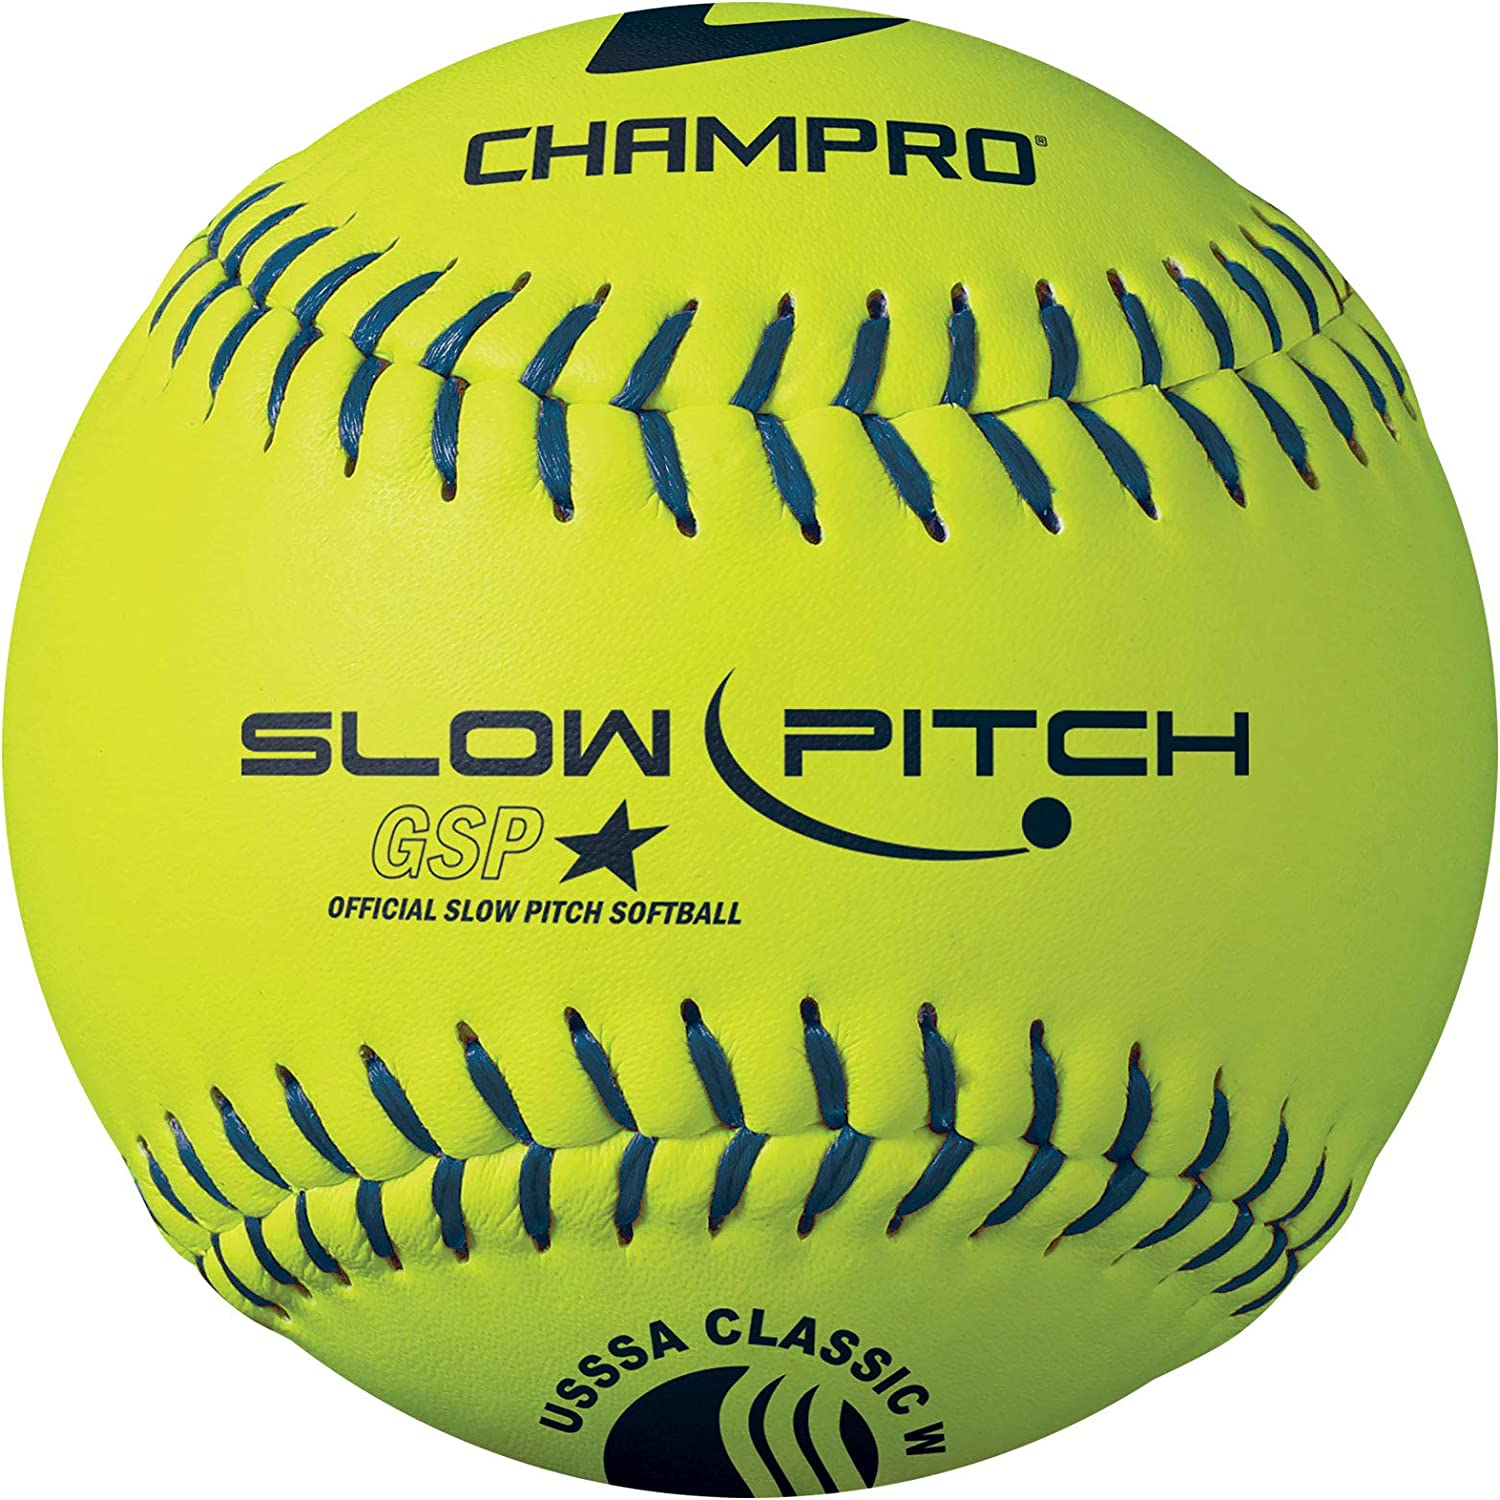 Champro Durahide Max 43% OFF Genuine cover USSSA Slow Pitch